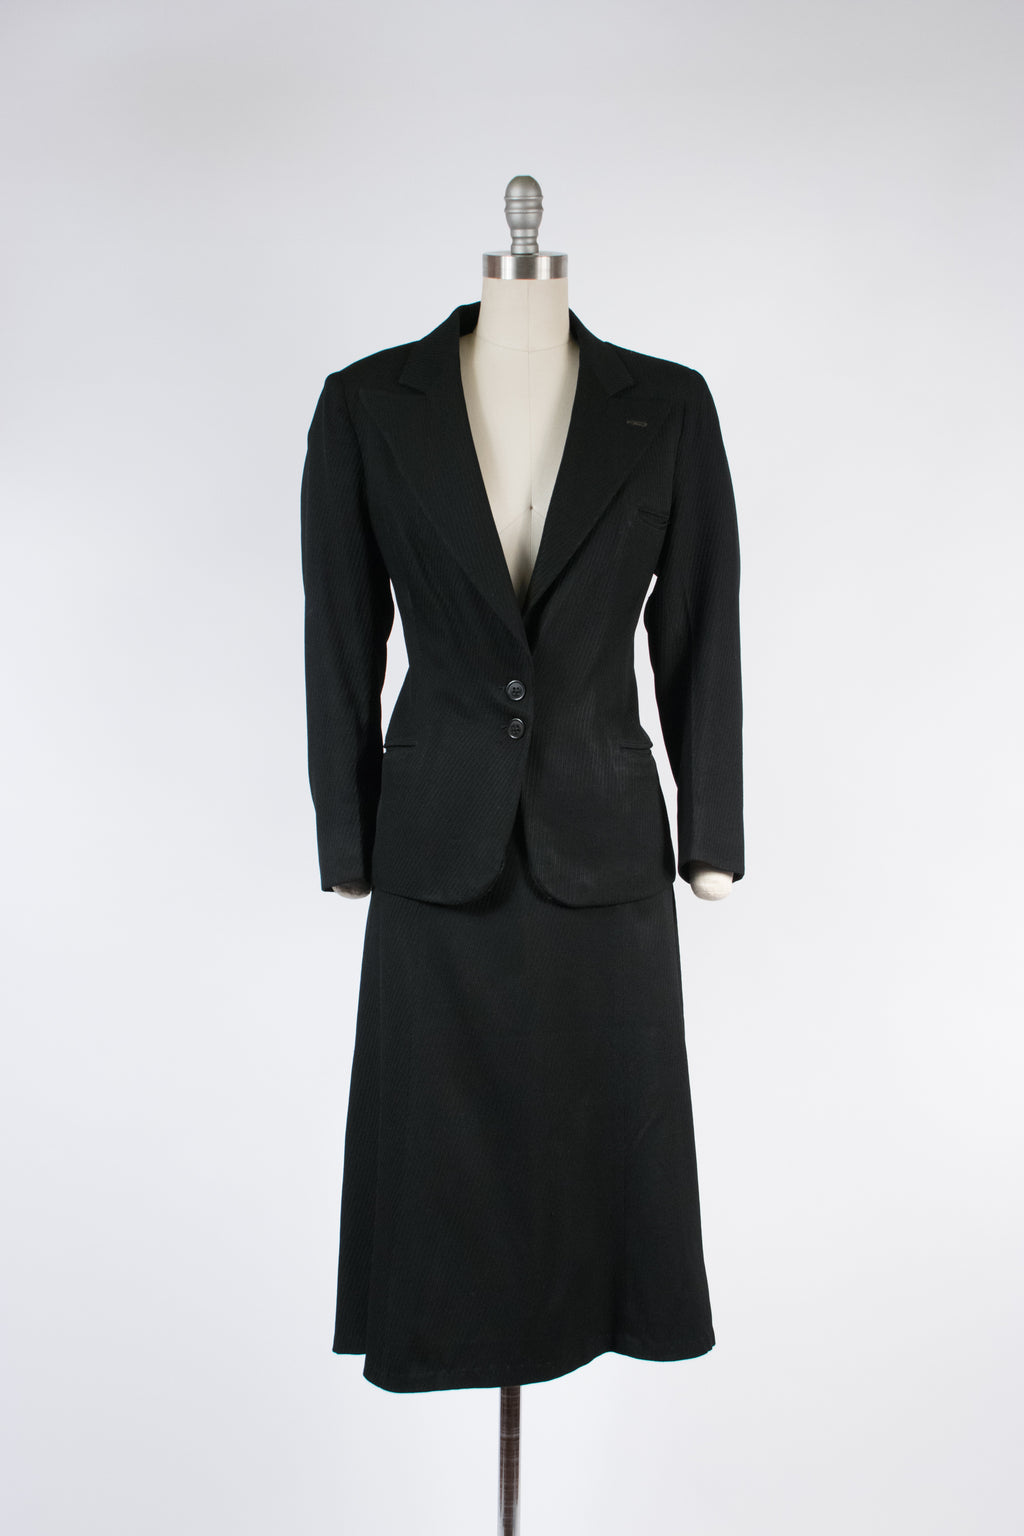 Smart 1940s Volup Suit with Low Gorge Made in a Bias Cut Lustrous Ribbed Rayon